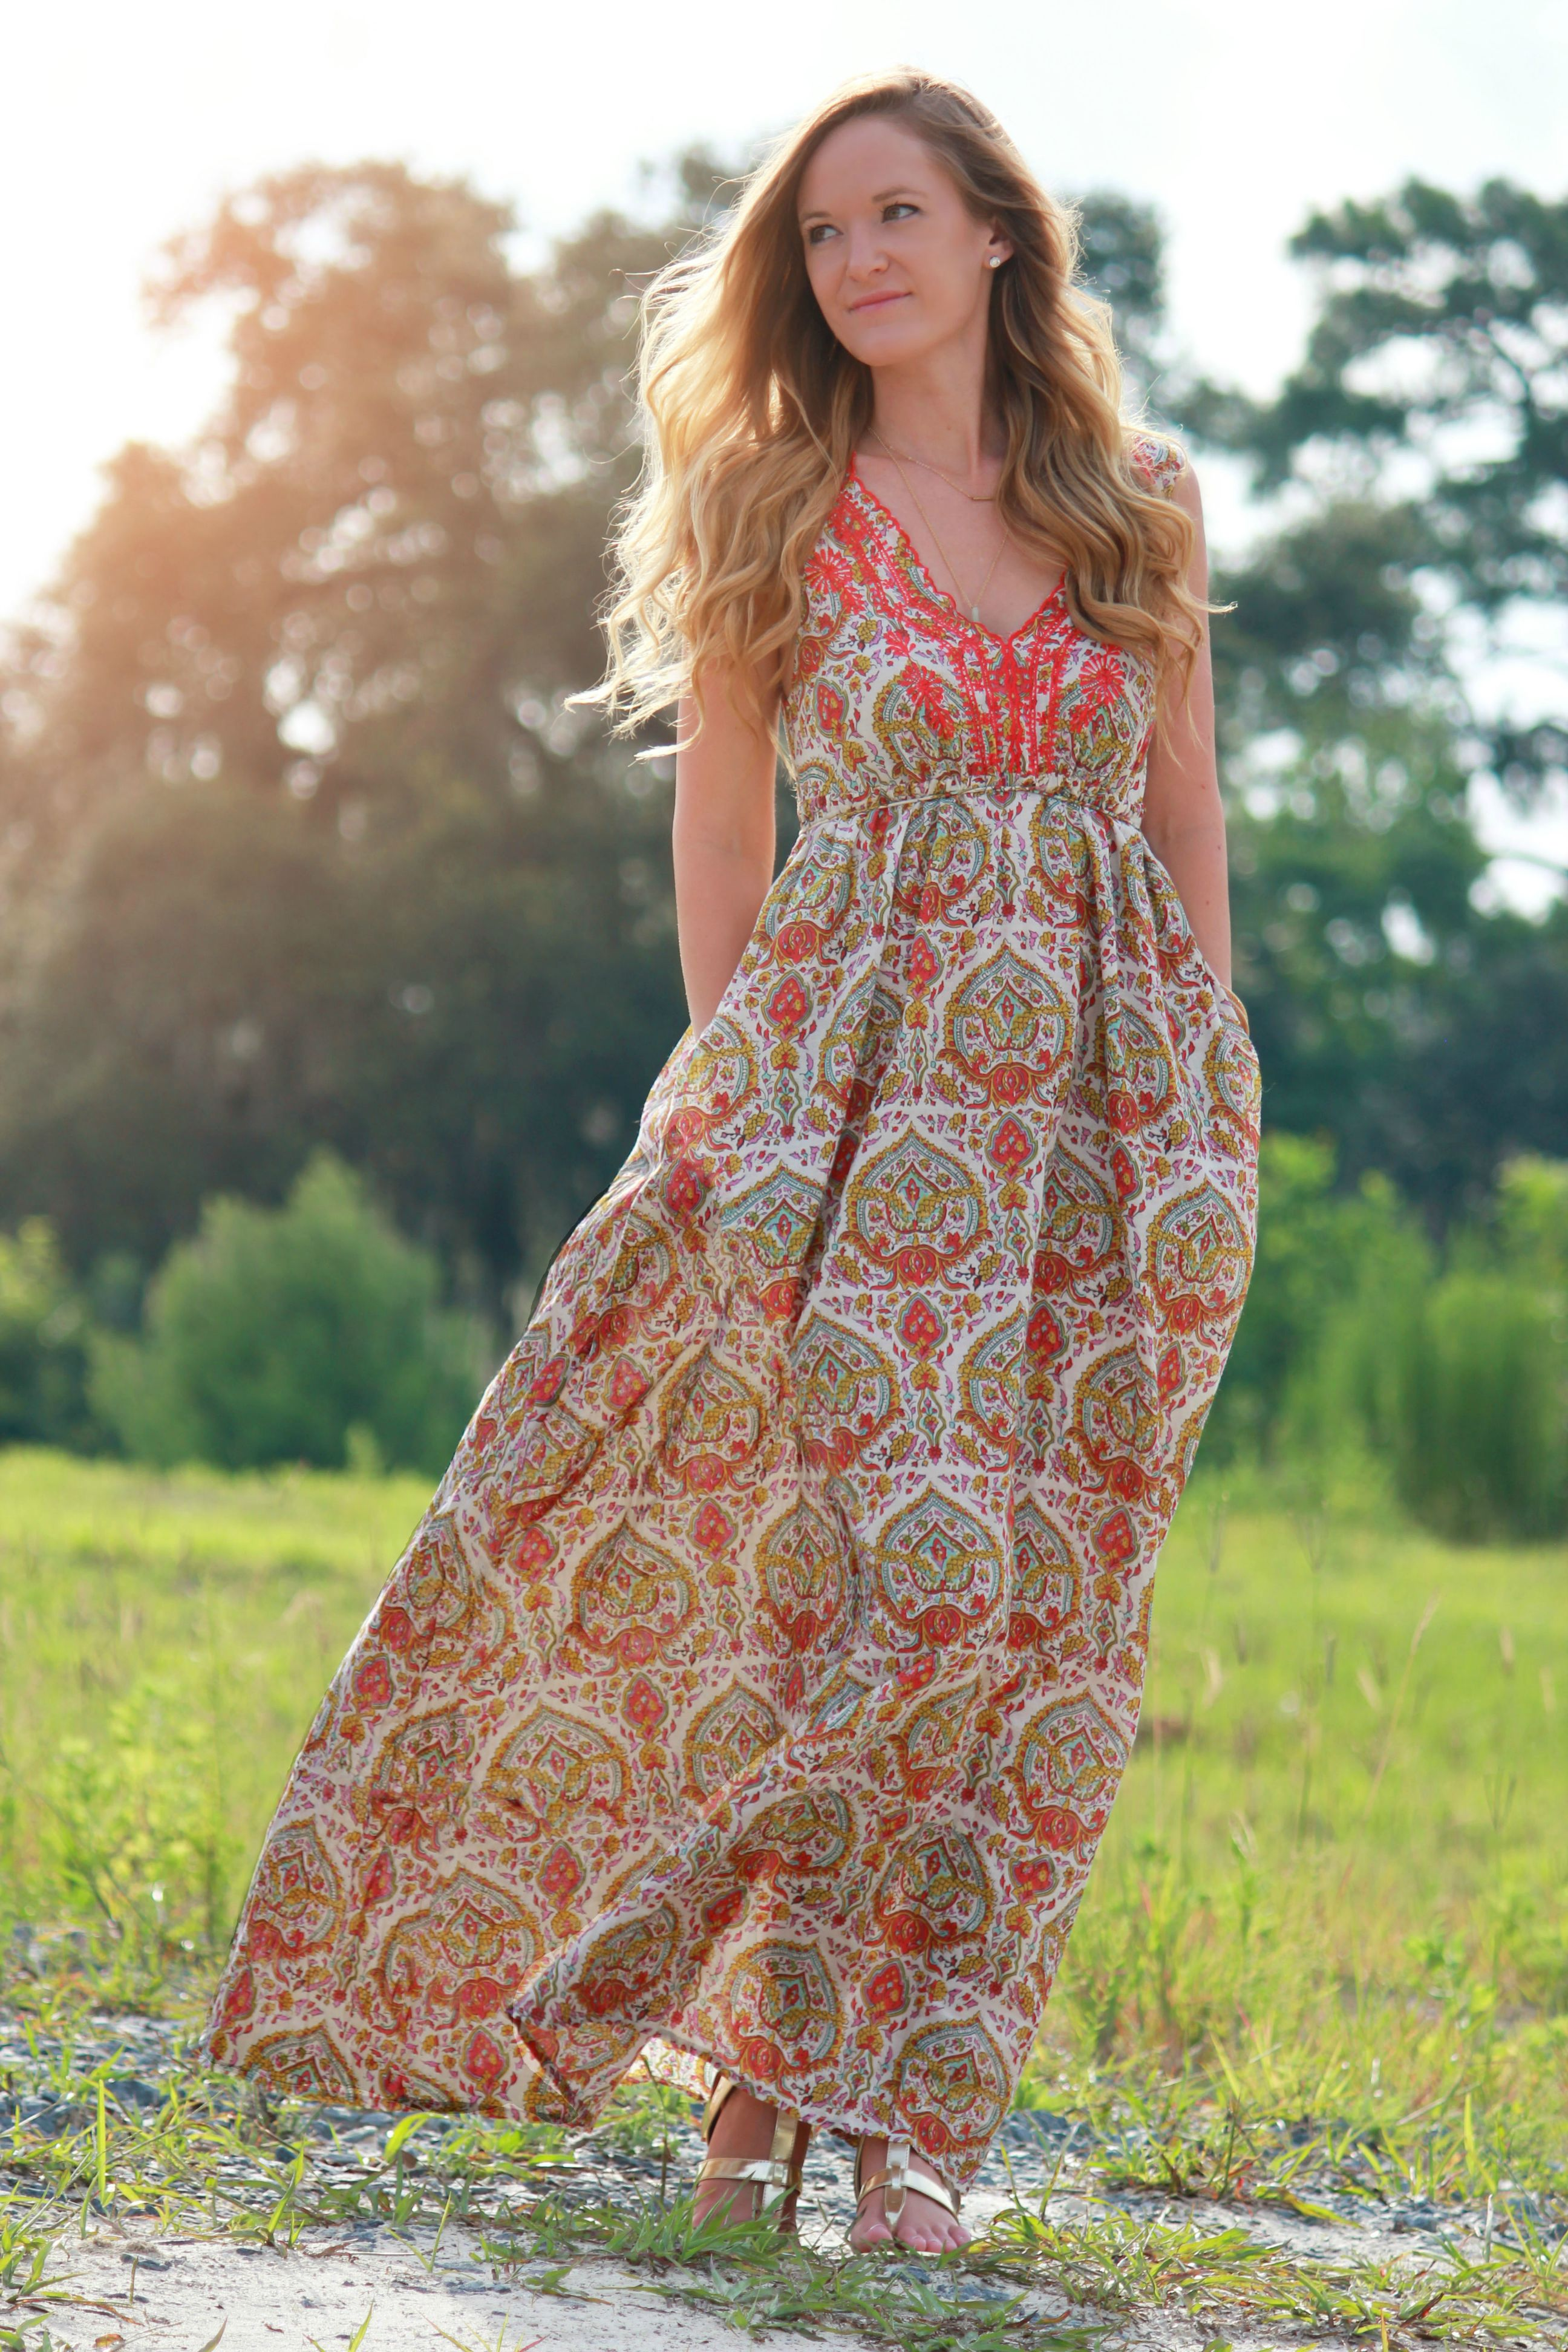 Boho Maxi Dress Pattern Eshakti Dress Patterned Maxi